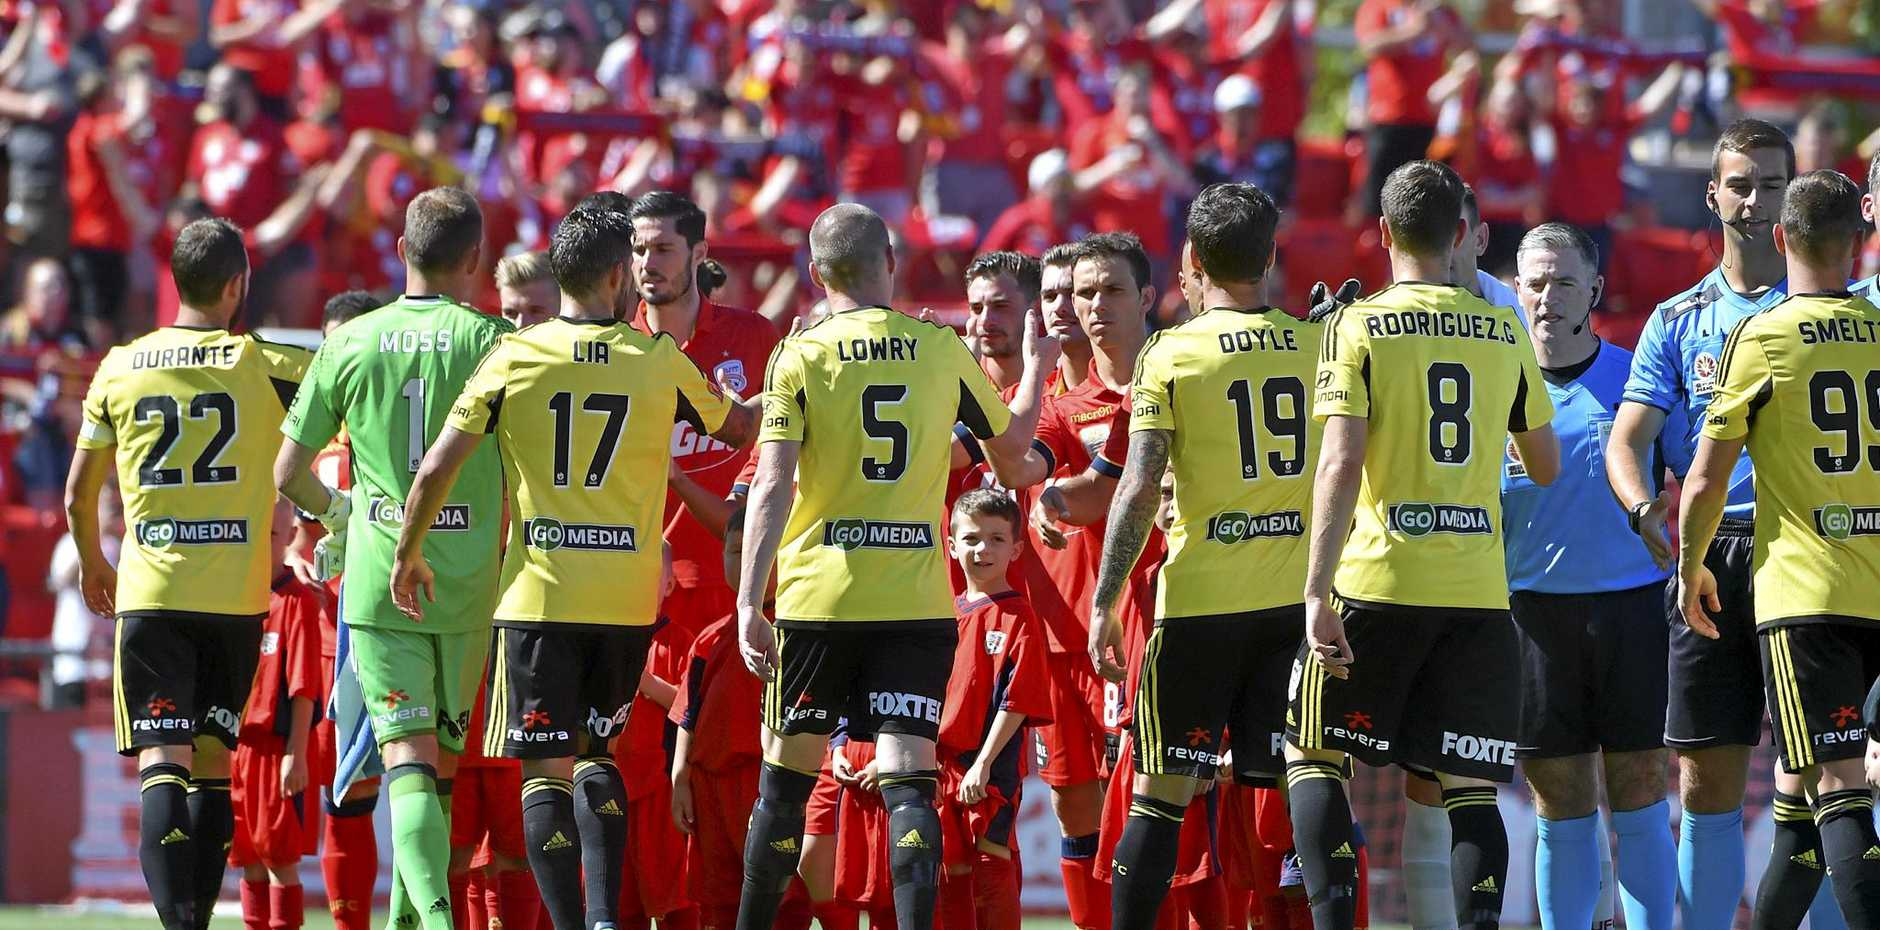 Adelaide United and Wellington Phoenix players line up before their round 17 A-League match at Coopers Stadium in Adelaide.